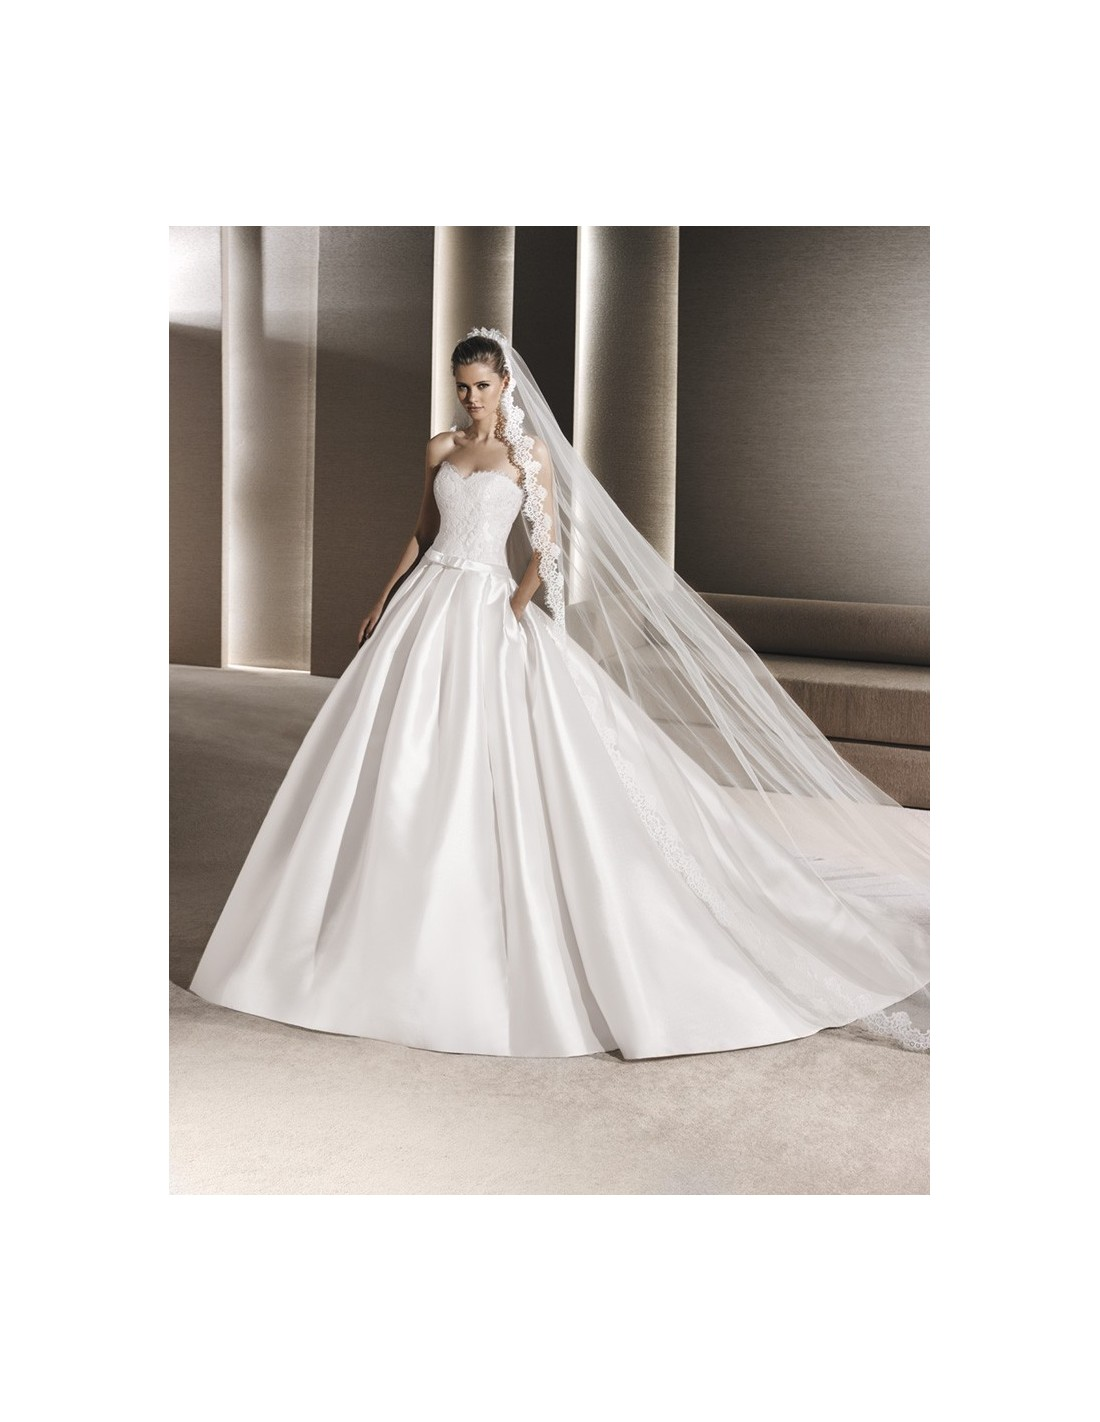 Wedding Dress Ruperta Sedka Novias